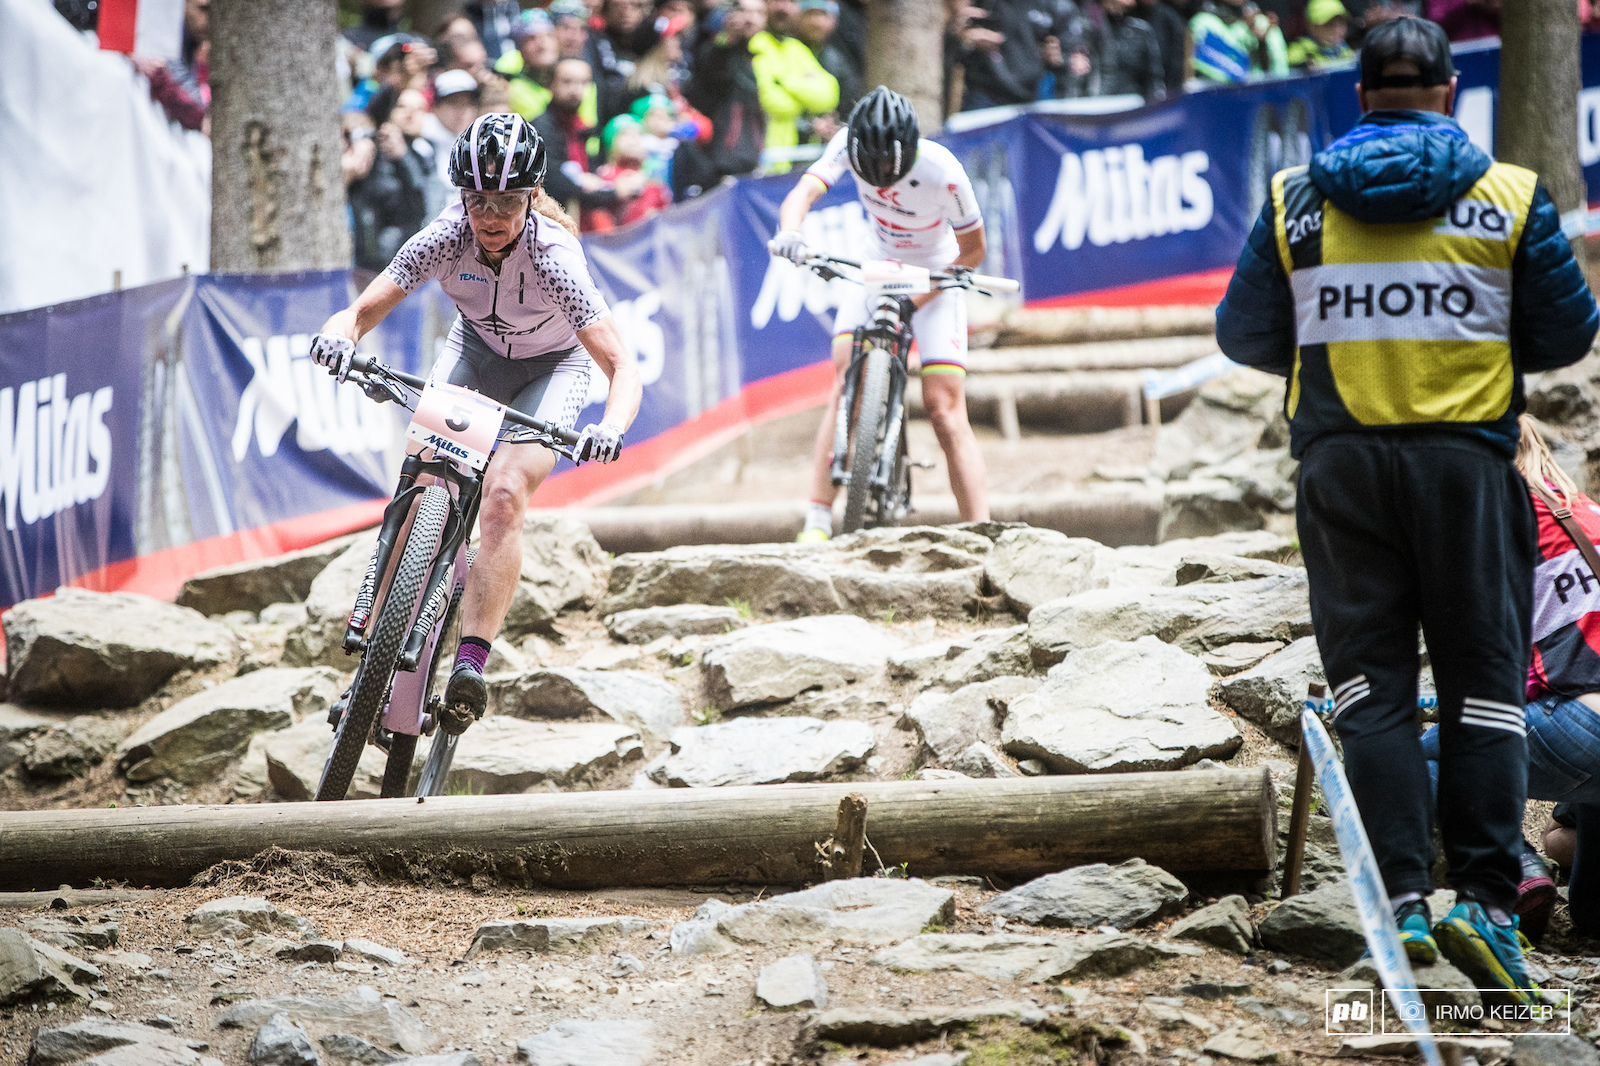 Gunn-Rita Dahle-Flesjaa overtakes Maja Wloszczowska as she struggled in Mita s choice.